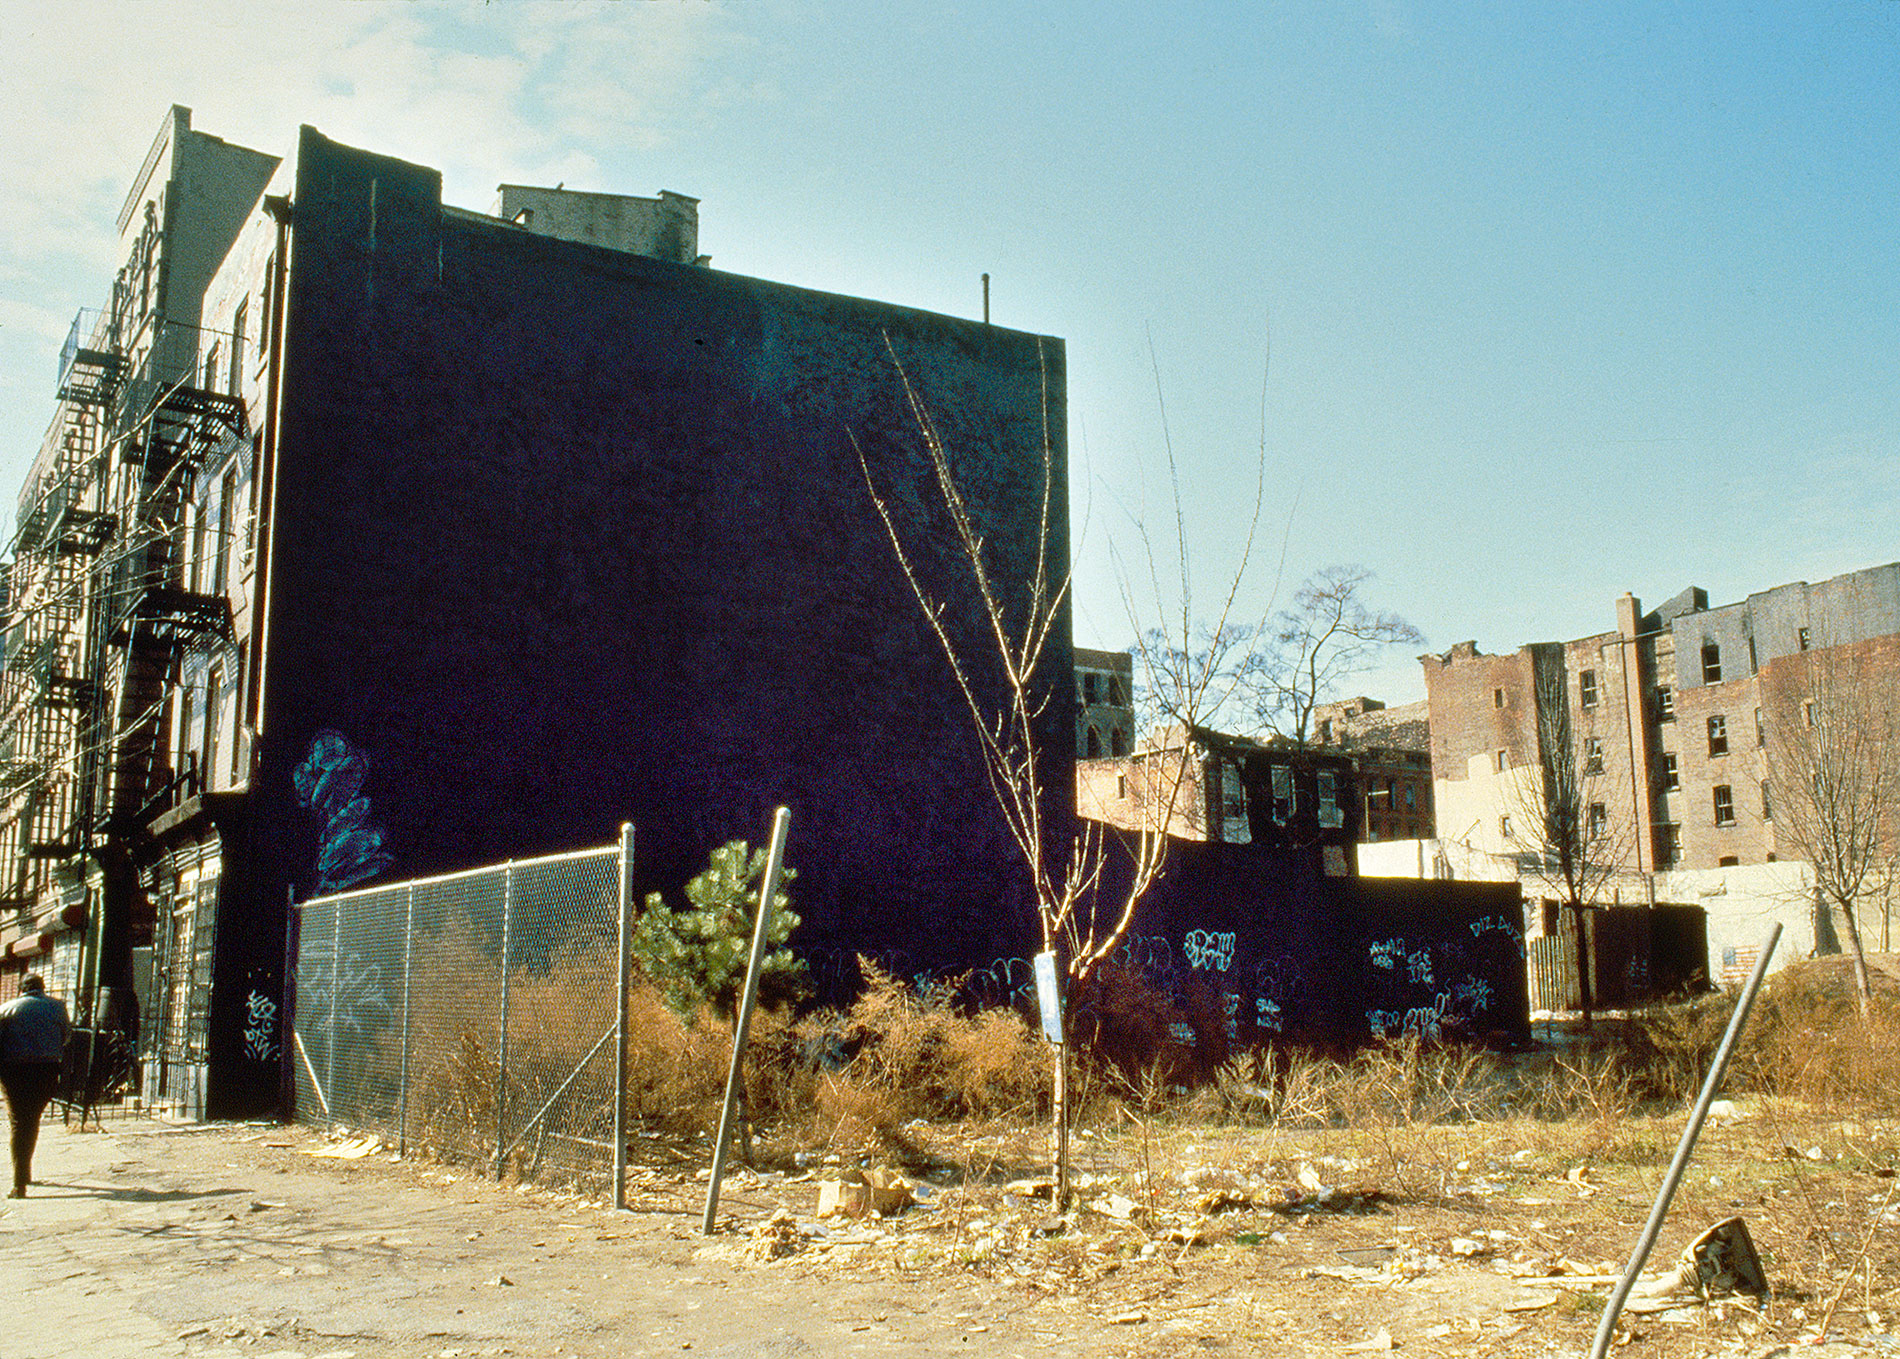 La Plaza Cultural in 1985   Photo © Camille Perrottet